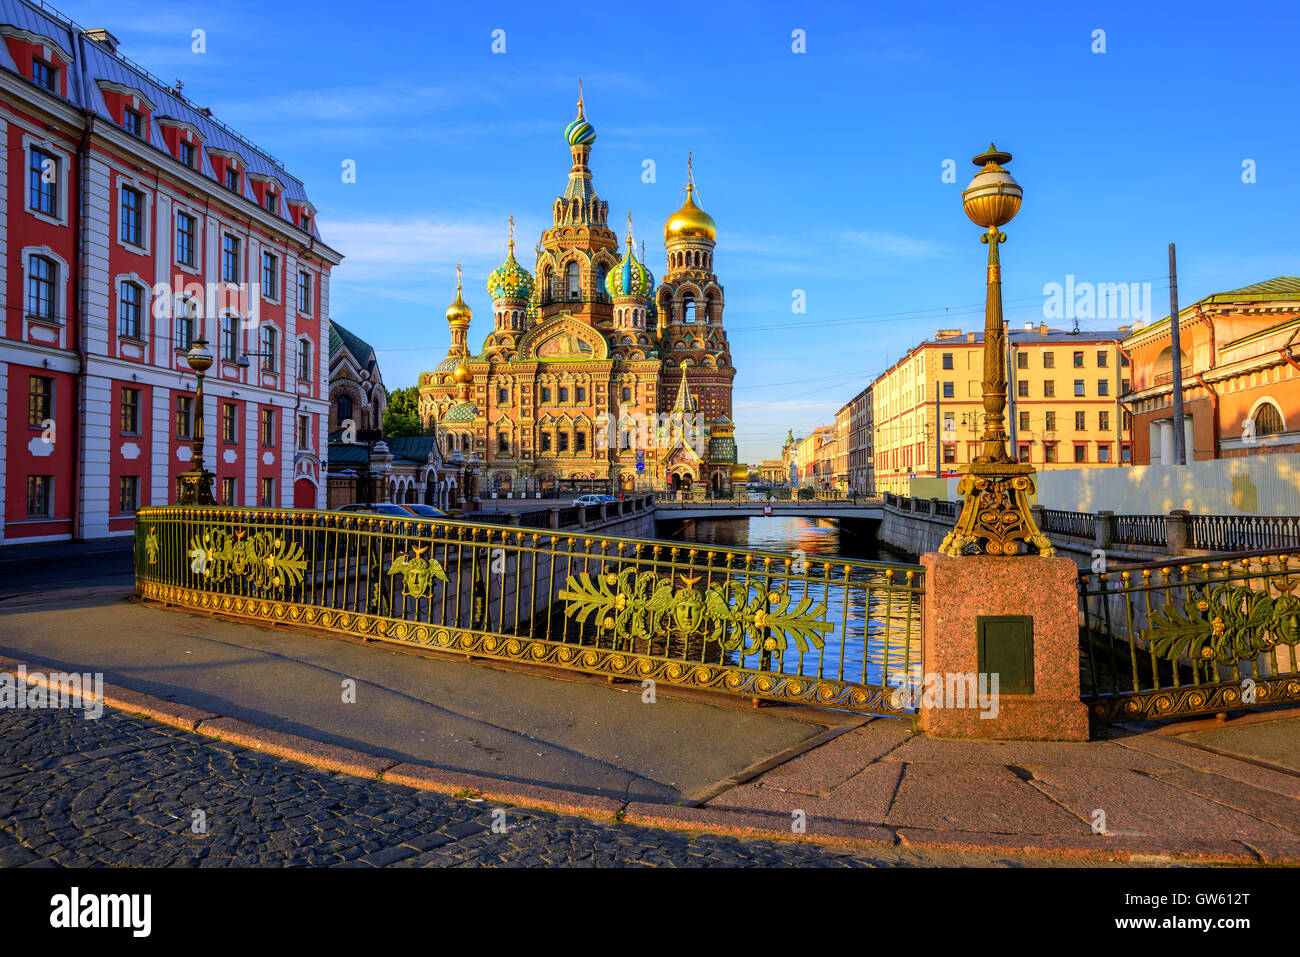 The Church of the Savior on Spilled Blood on Griboyedov canal in the early morning light, St. Petersburg, Russia. - Stock Image